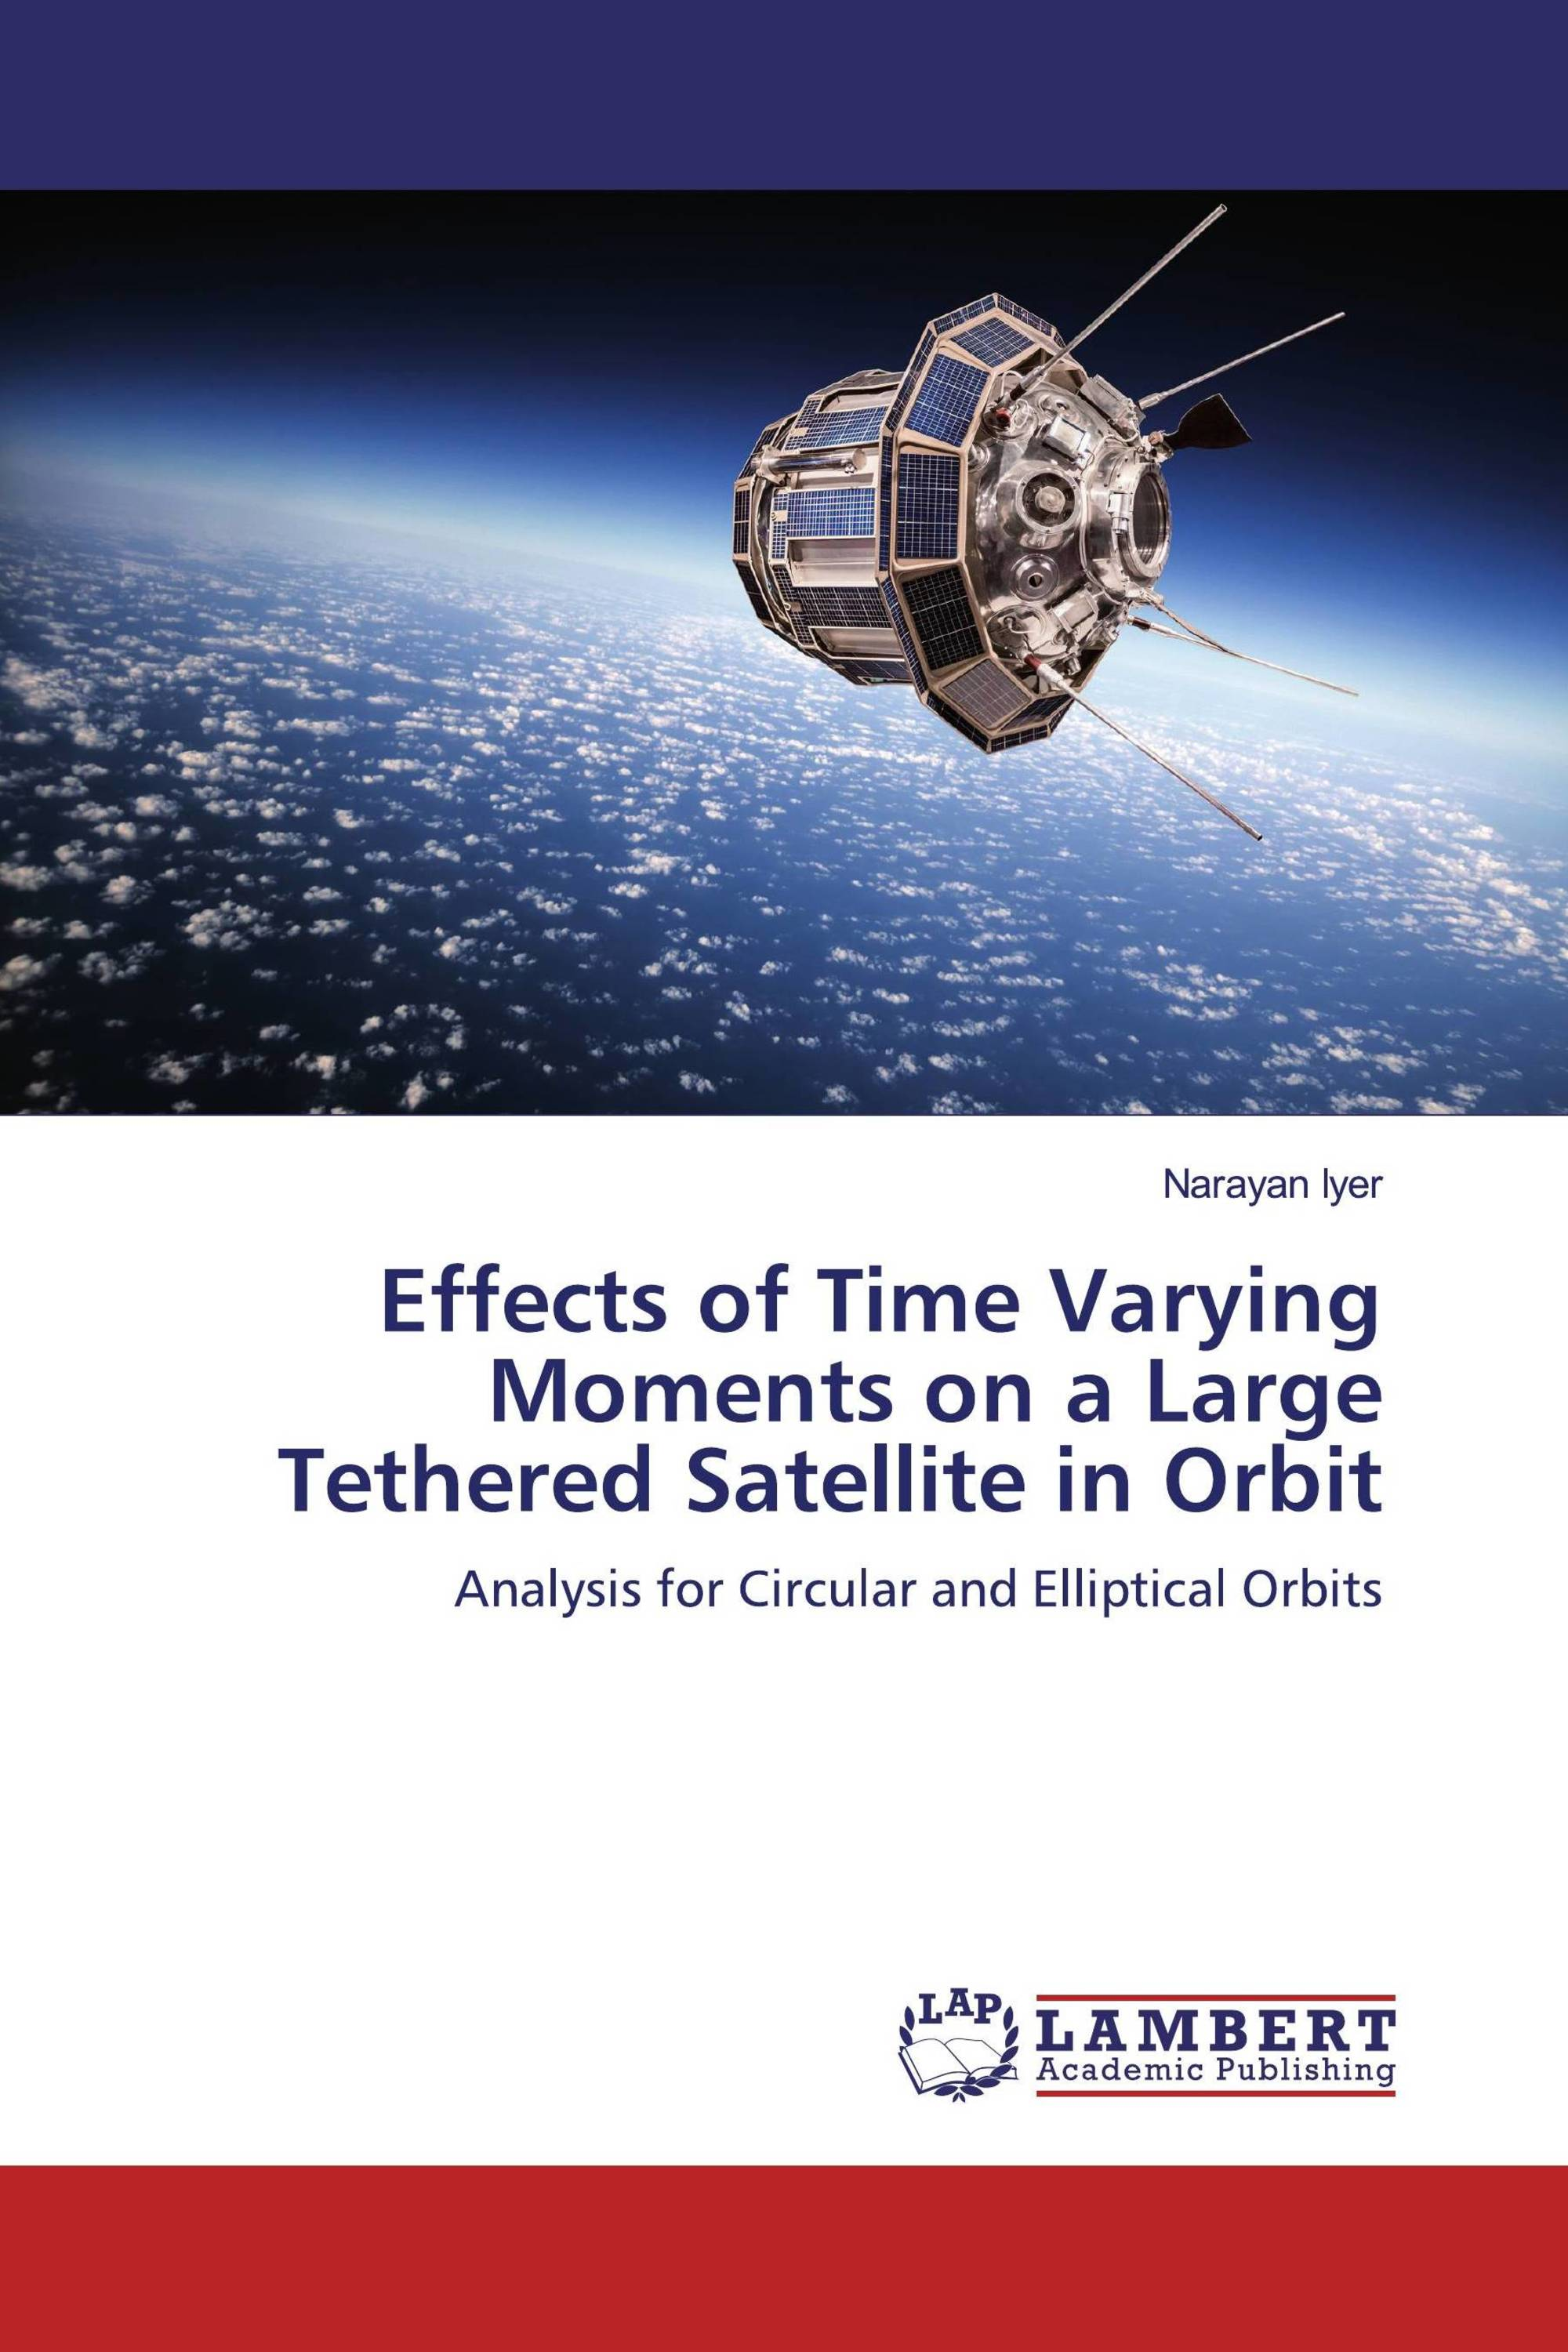 Effects of Time Varying Moments on a Large Tethered Satellite in Orbit